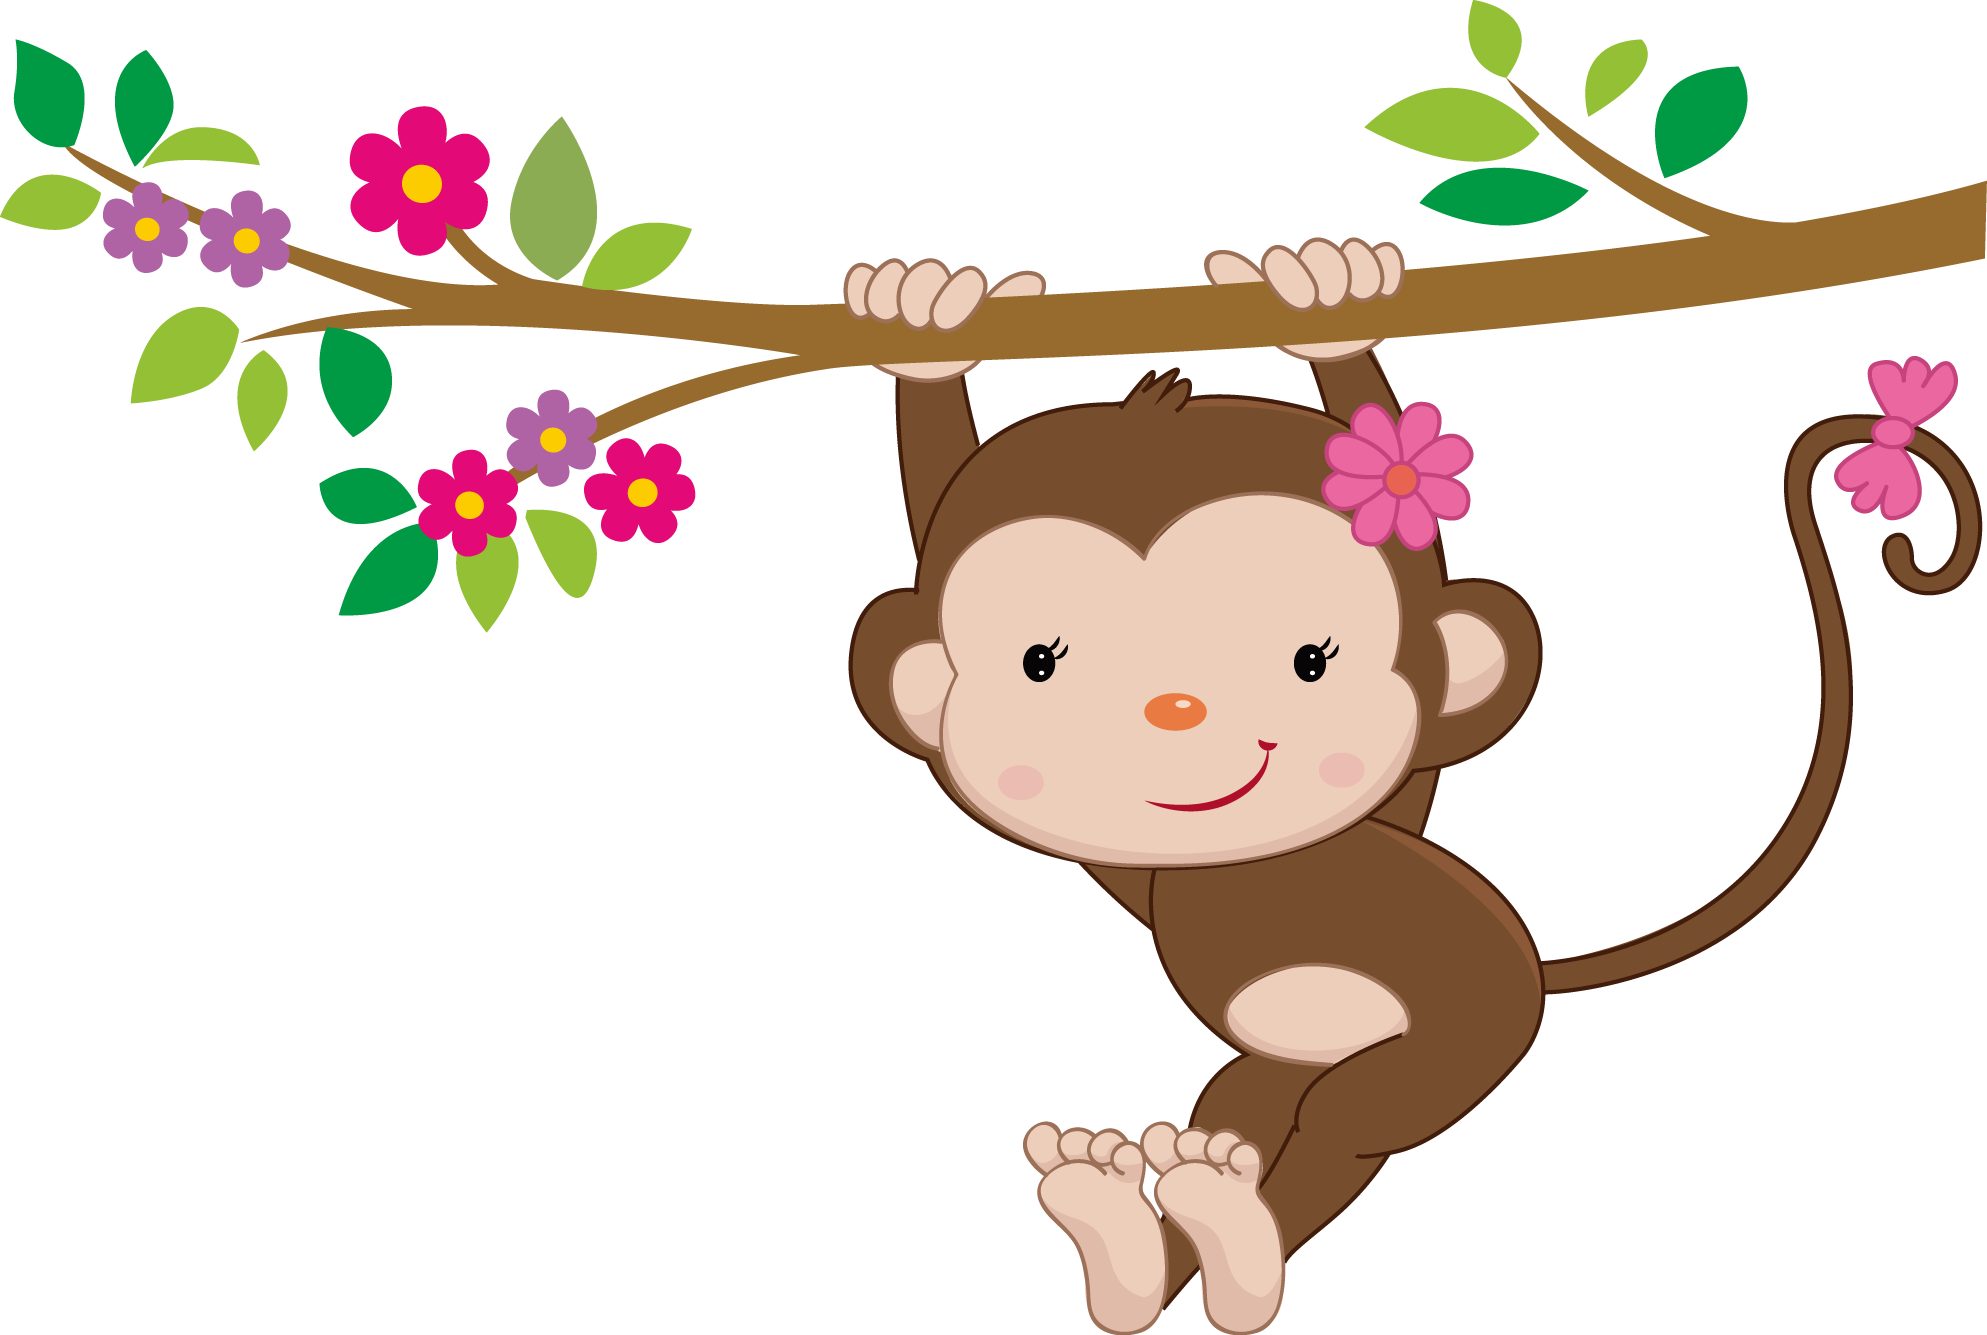 showering clipart dayclip